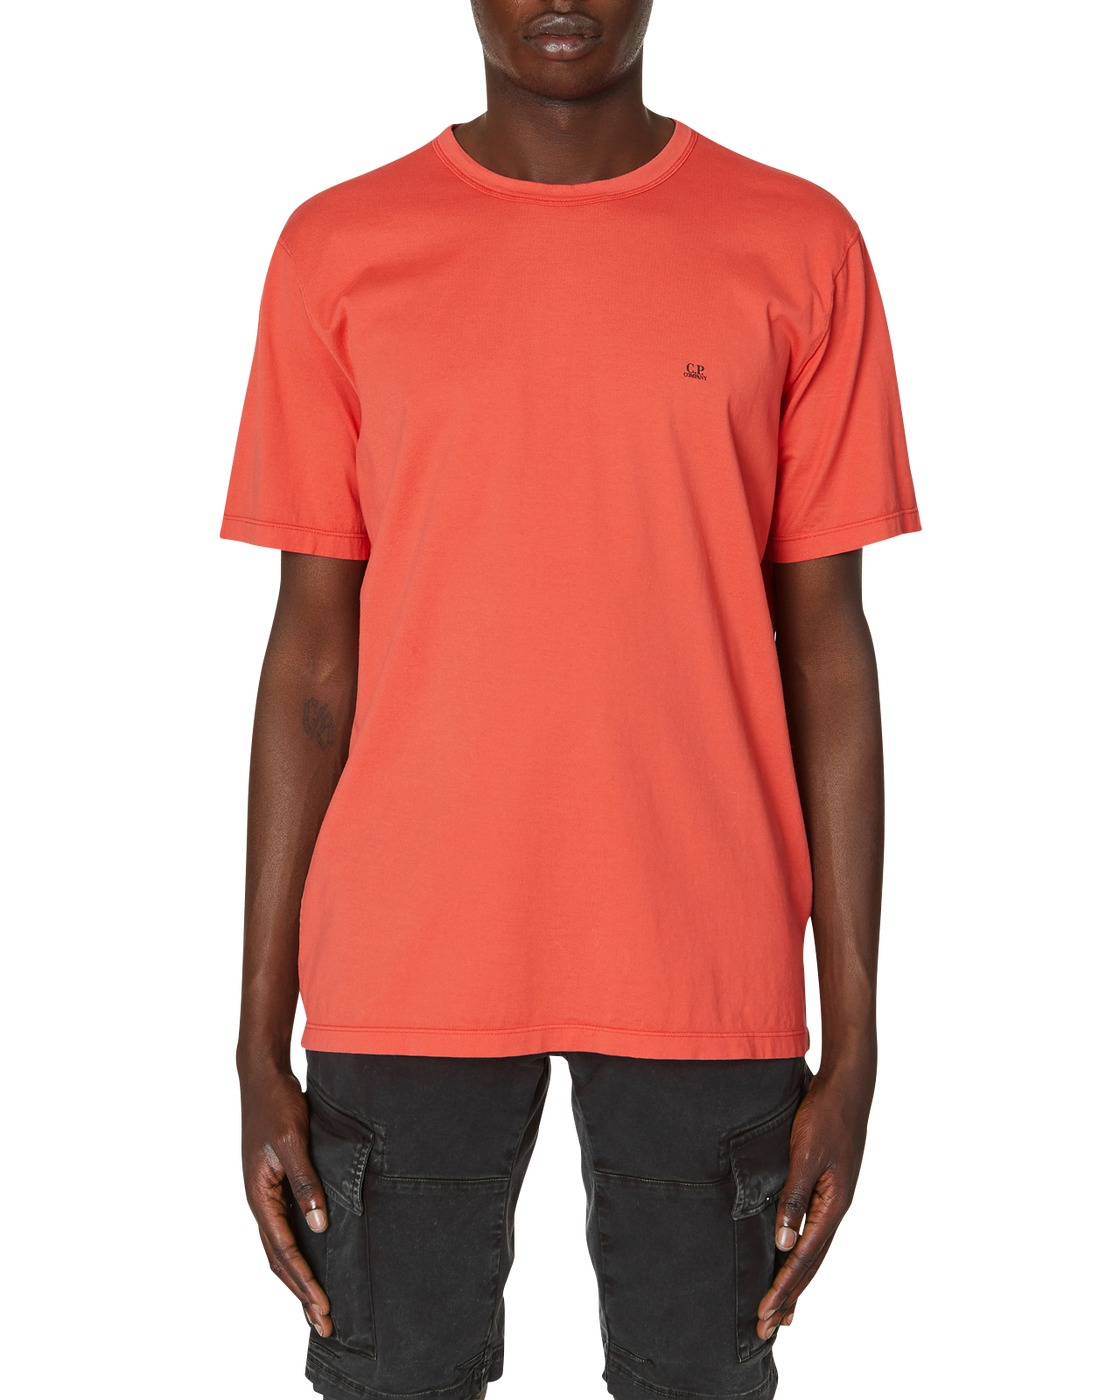 C.P. Company T Shirt High Risk Red